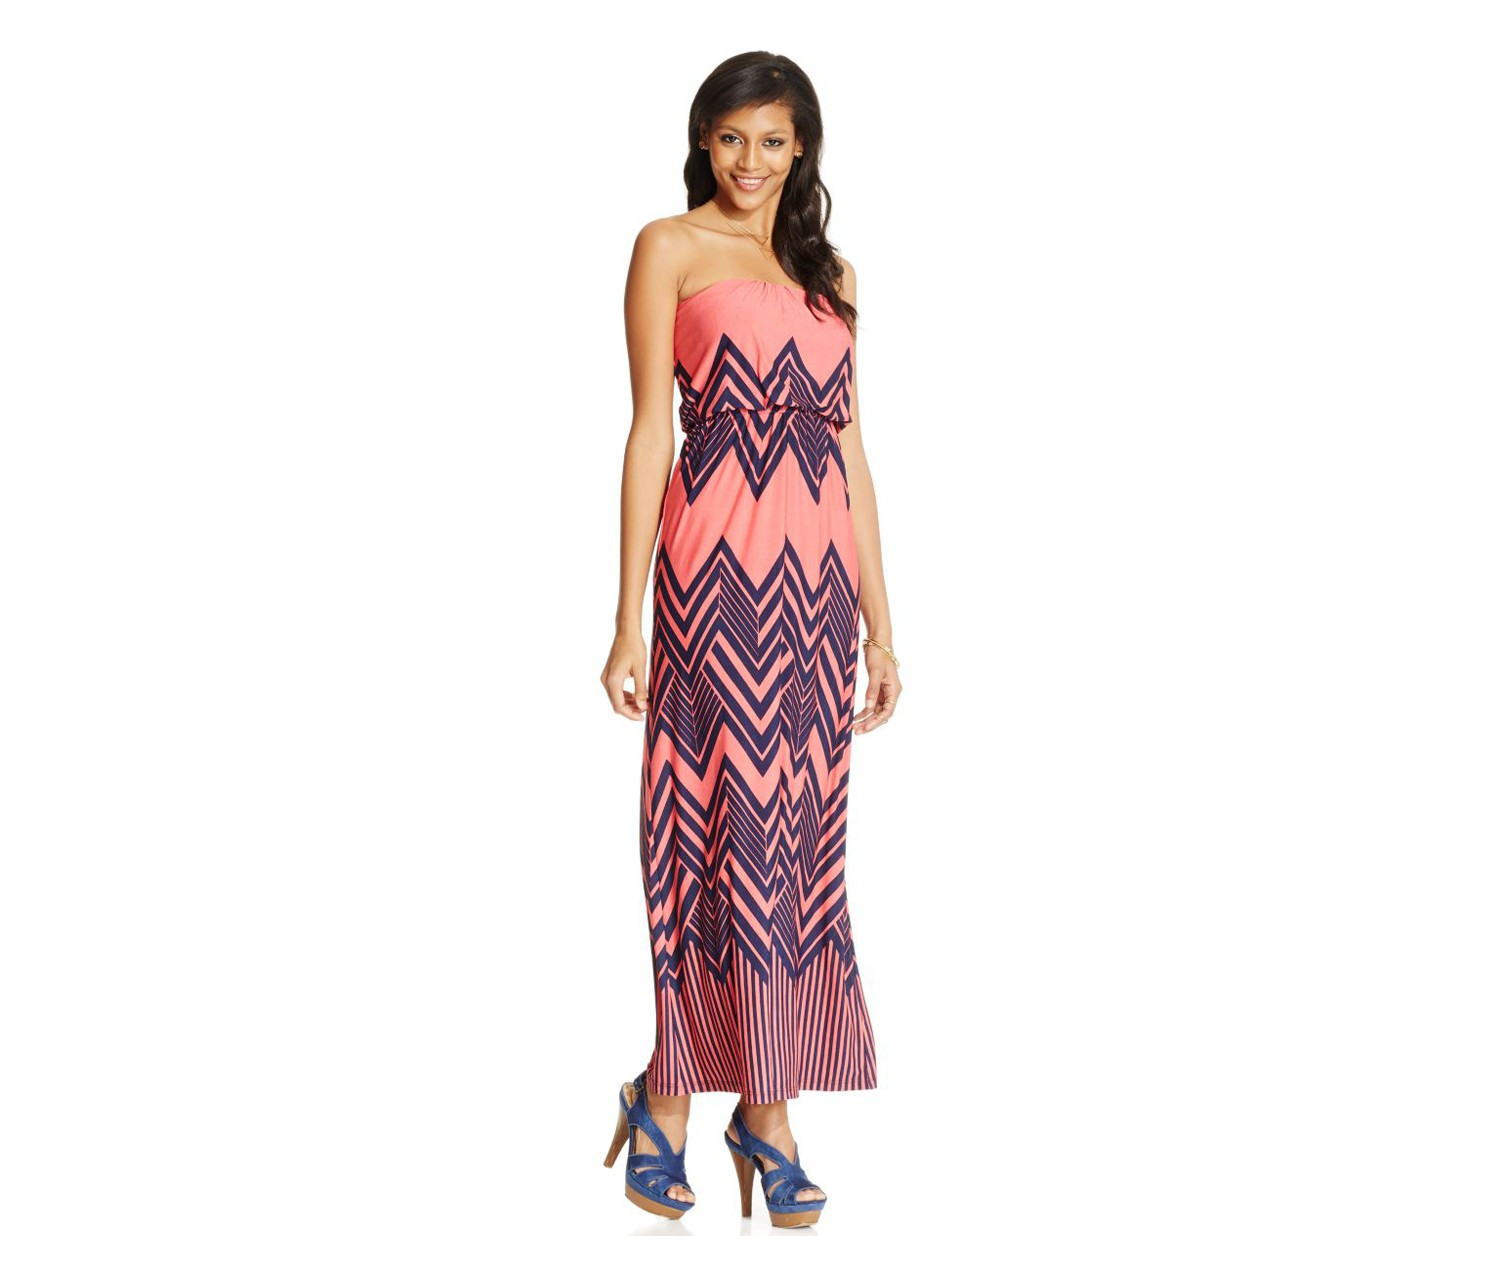 00e72262b94 Shop Trixxi Trixxi Juniors Strapless Printed Maxi Dress